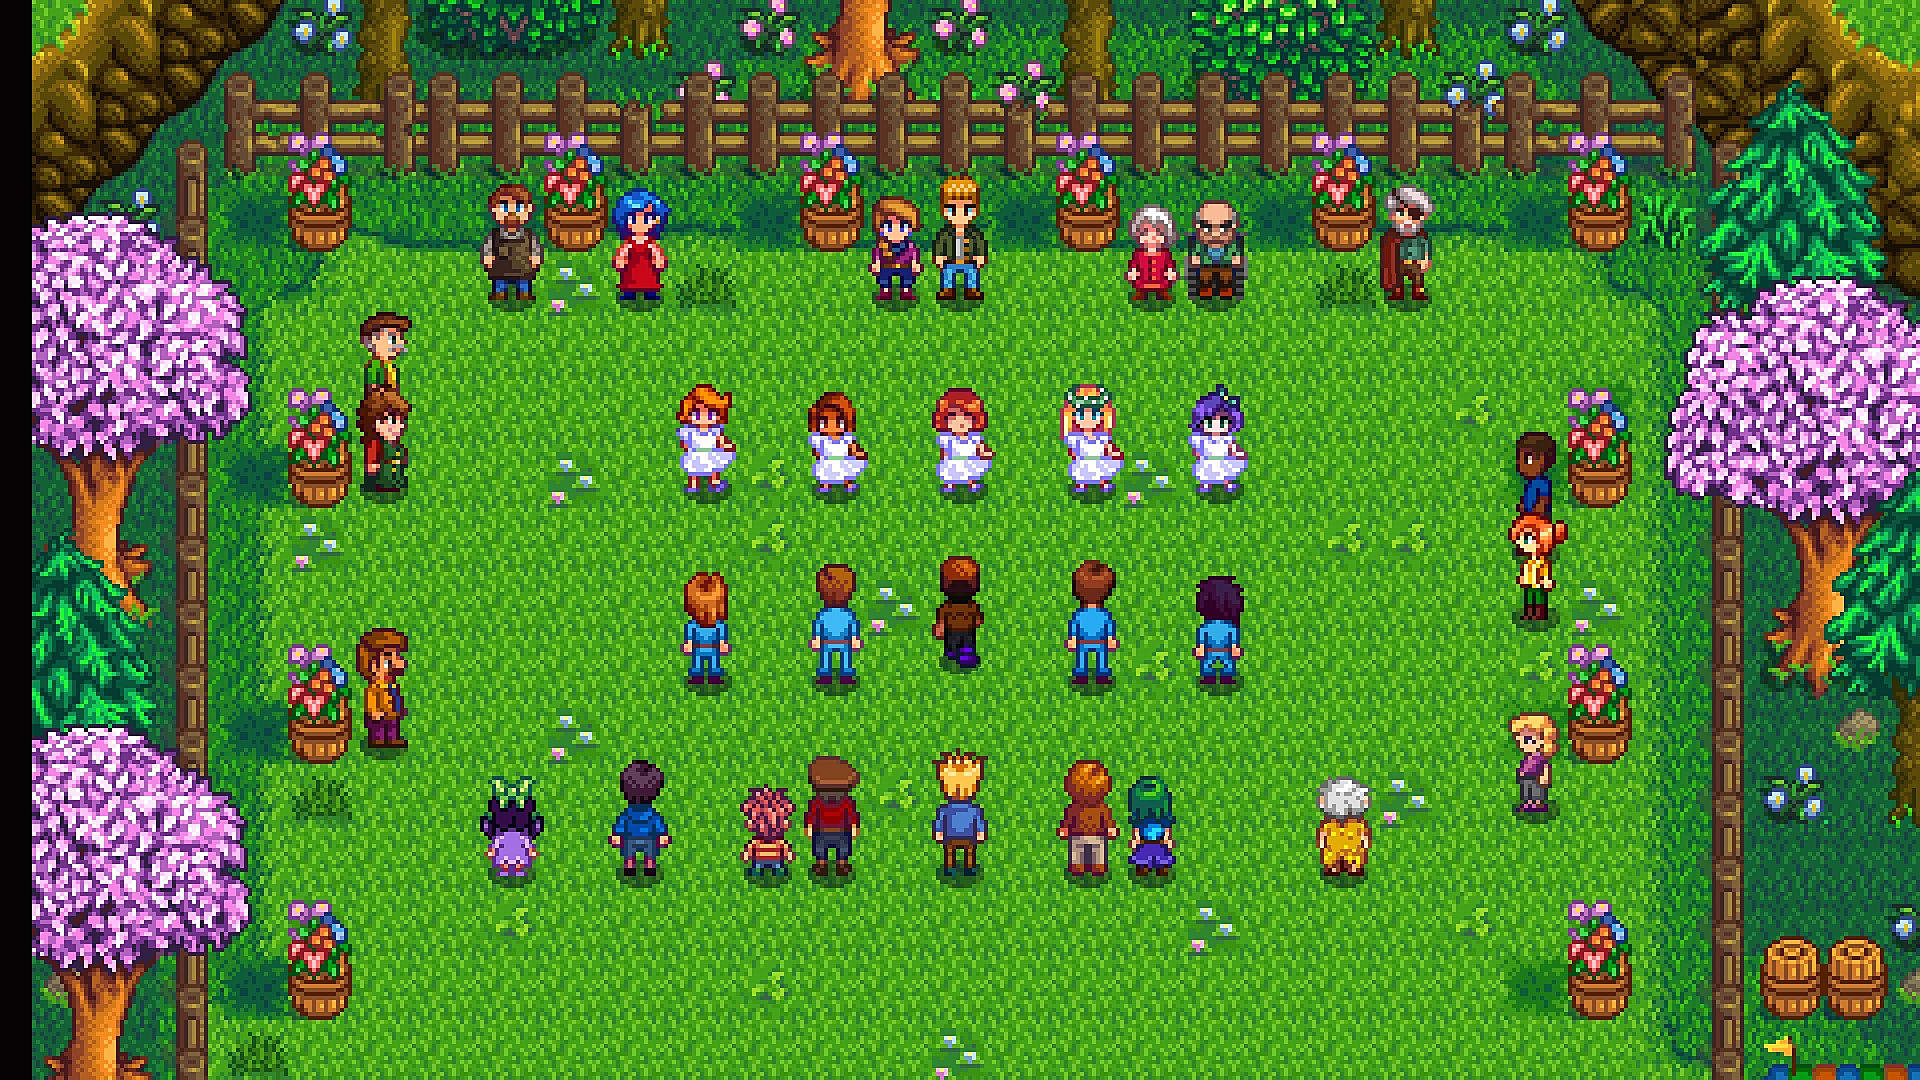 The Most Common Mistakes New Players Make in Stardew Valley